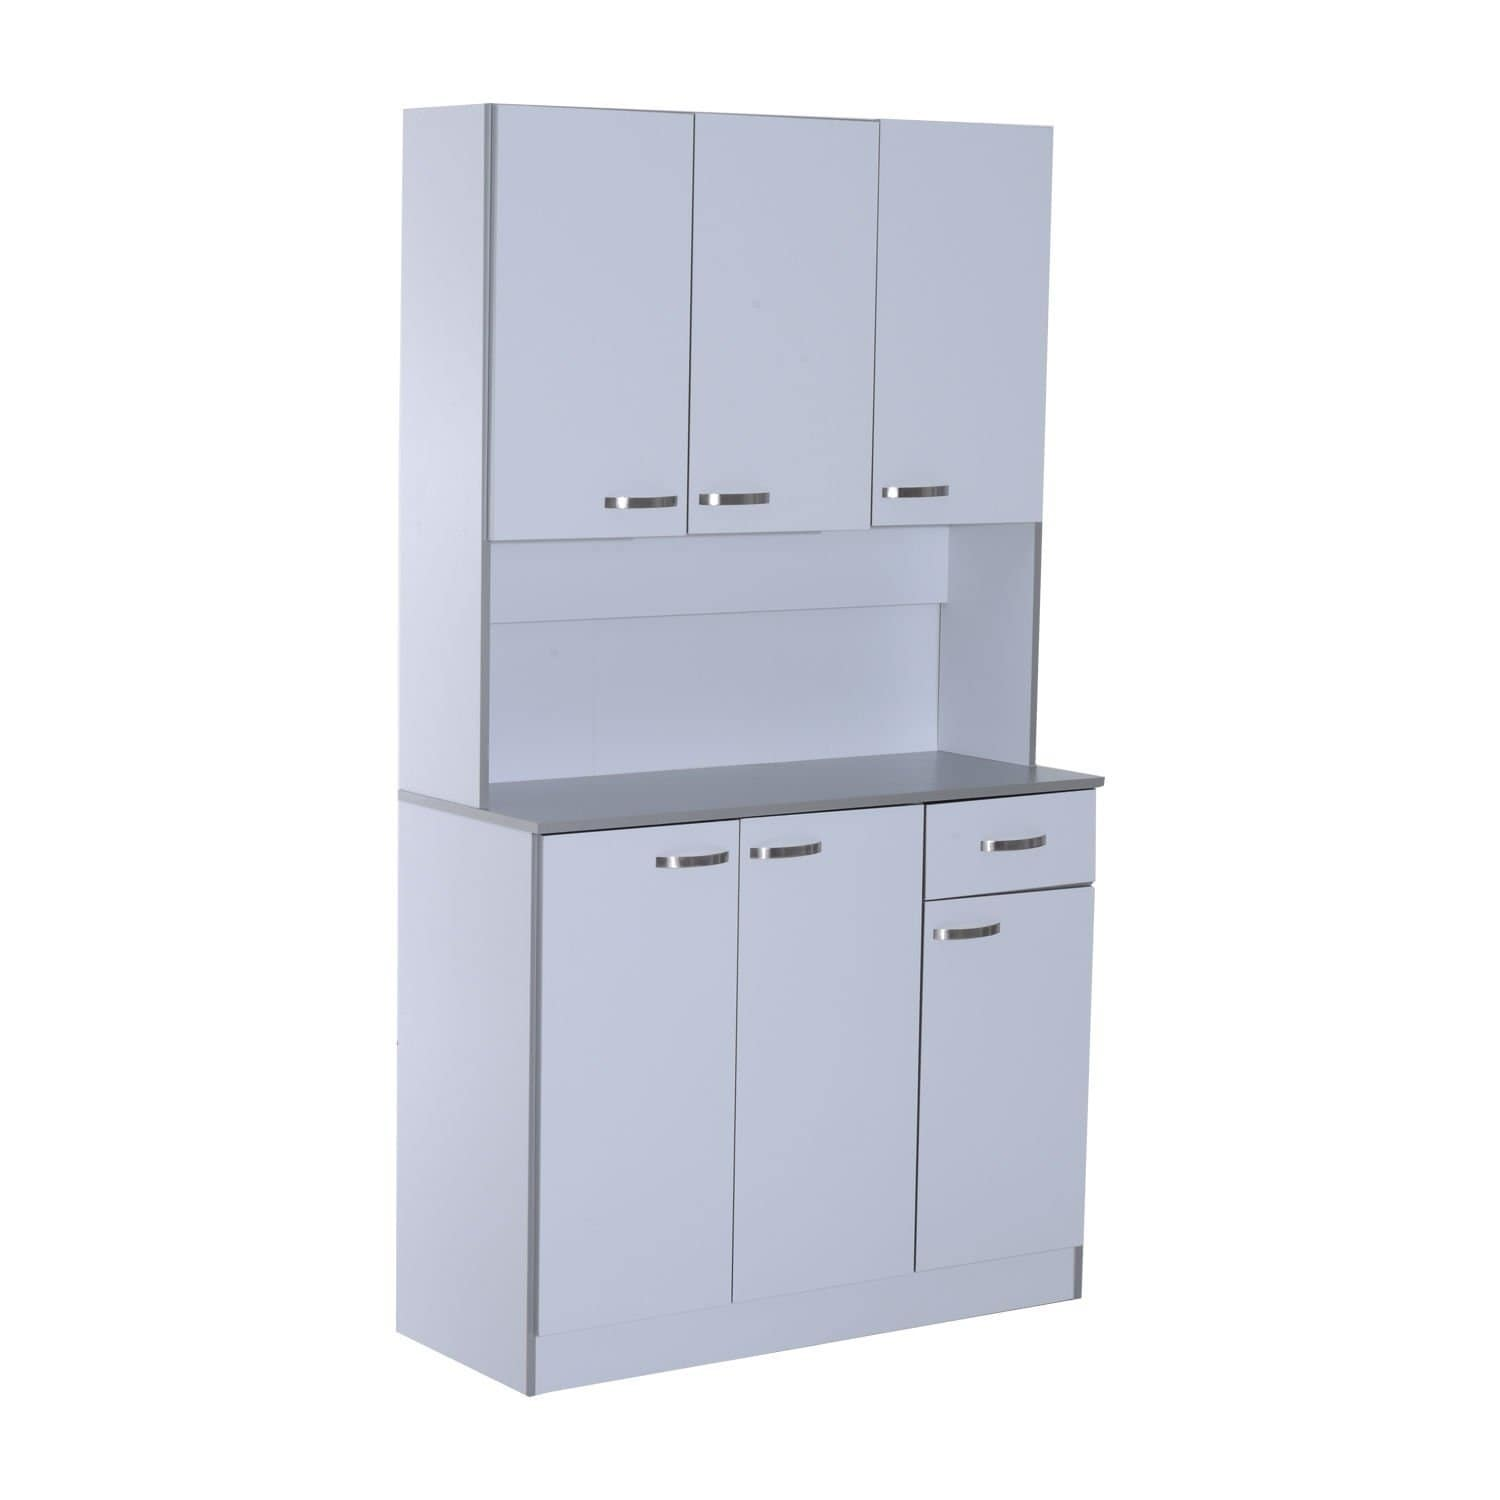 Shop homcom 71 microwave storage cabinet with doors and shelves white free shipping today overstock com 22378576